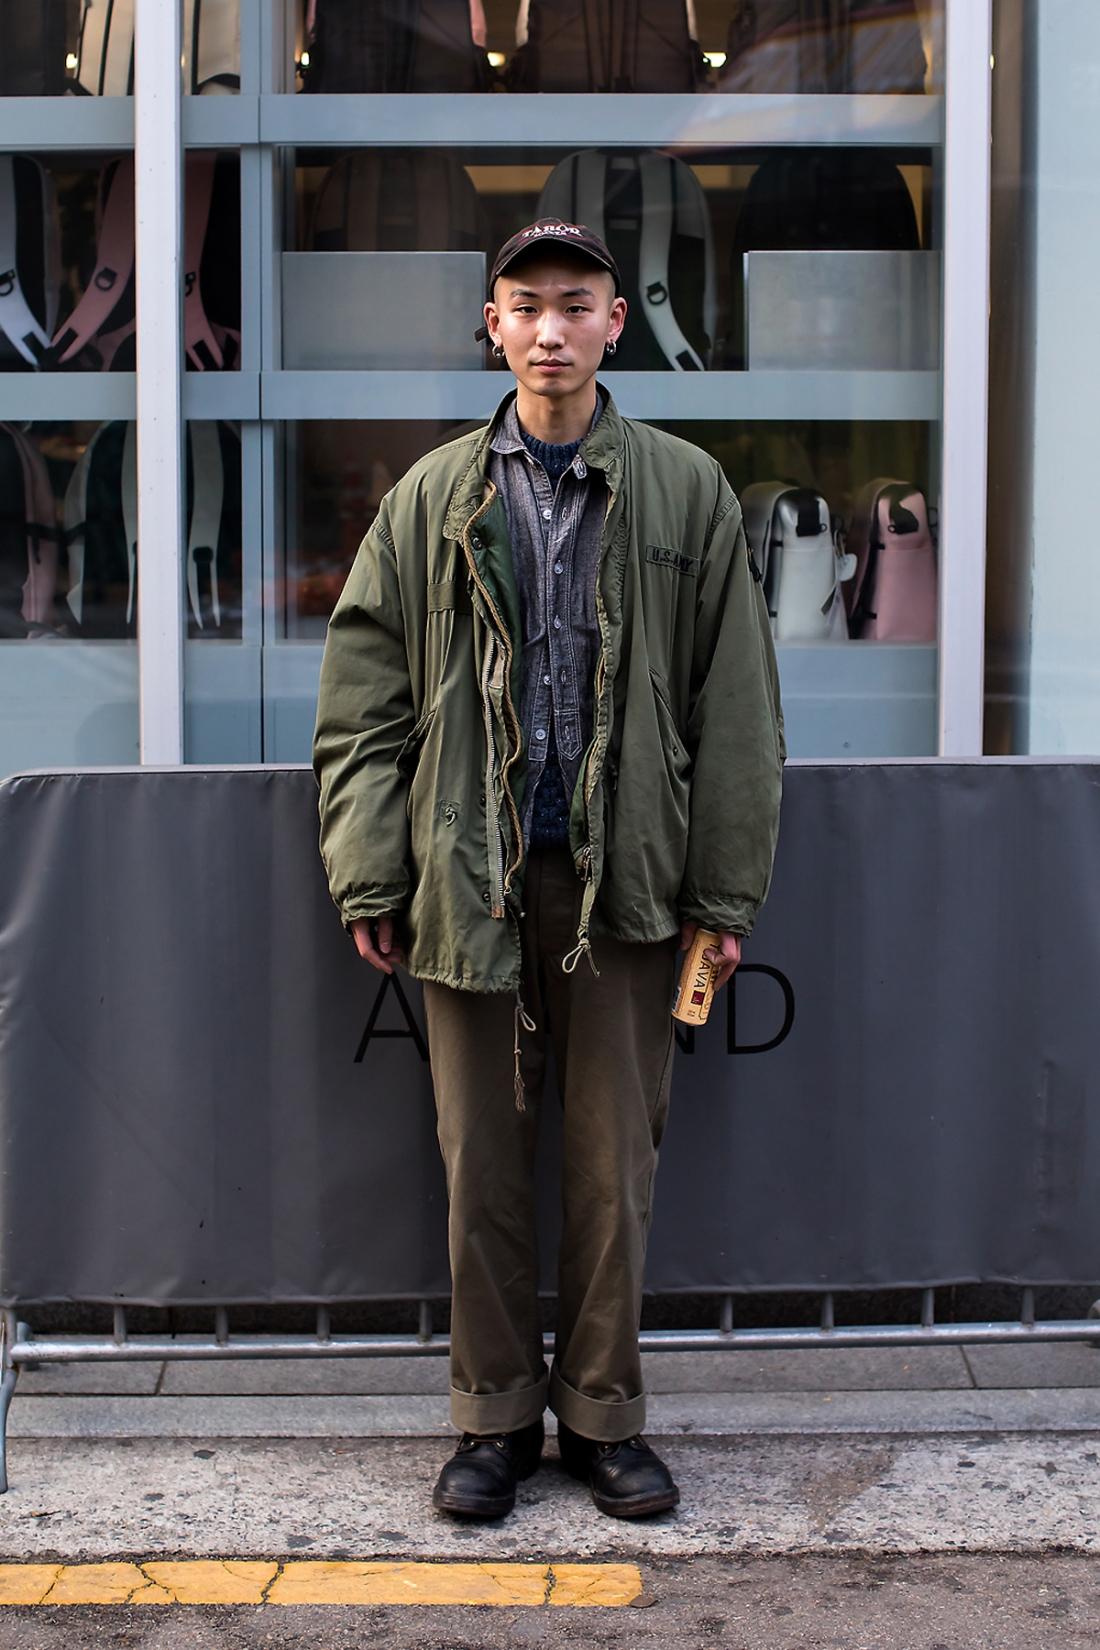 Kim Changhee, Street Fashion 2017 in SEOUL.jpg